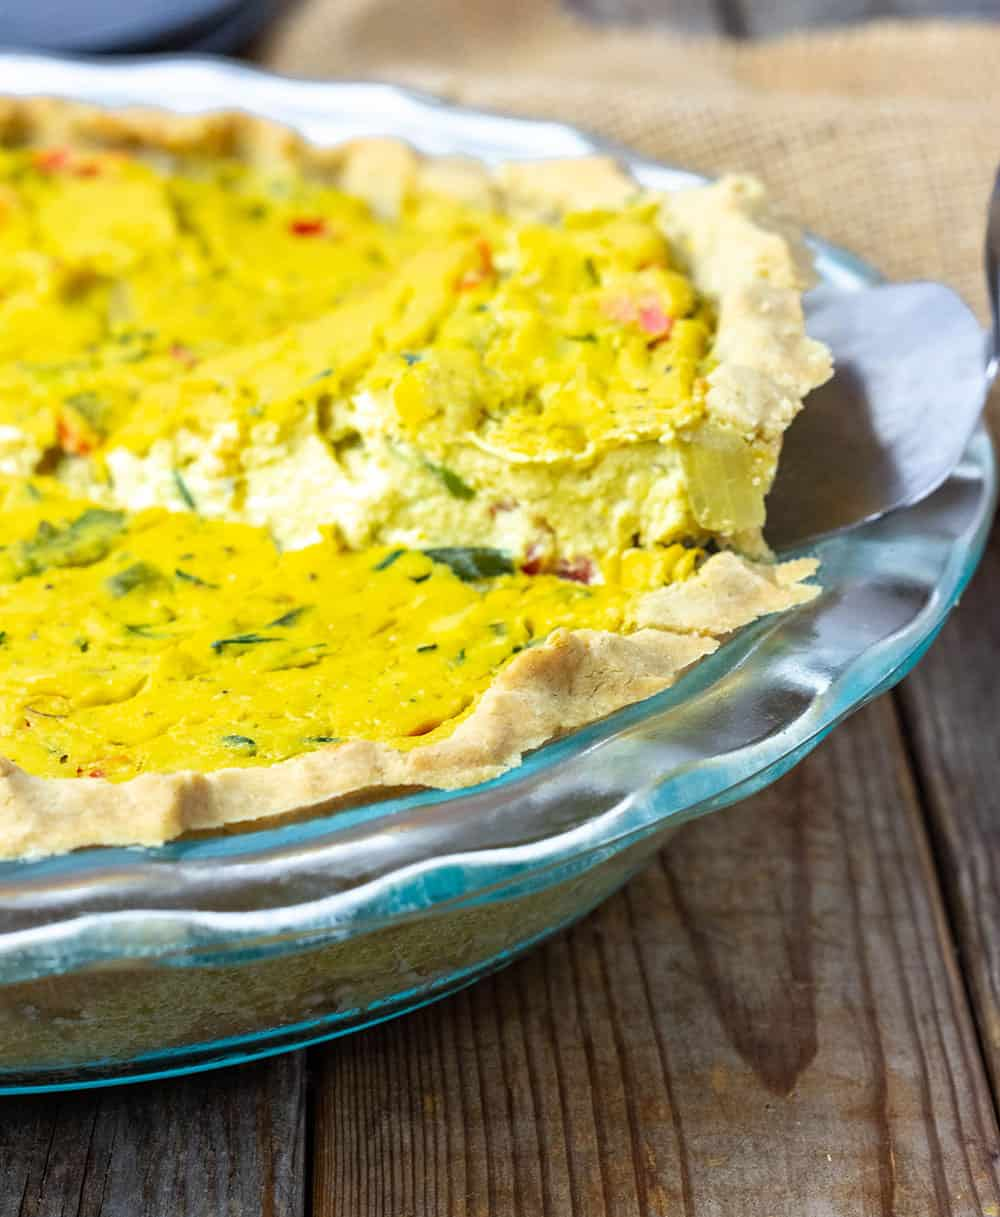 a slice being taken out of a quiche in a glass pie pan